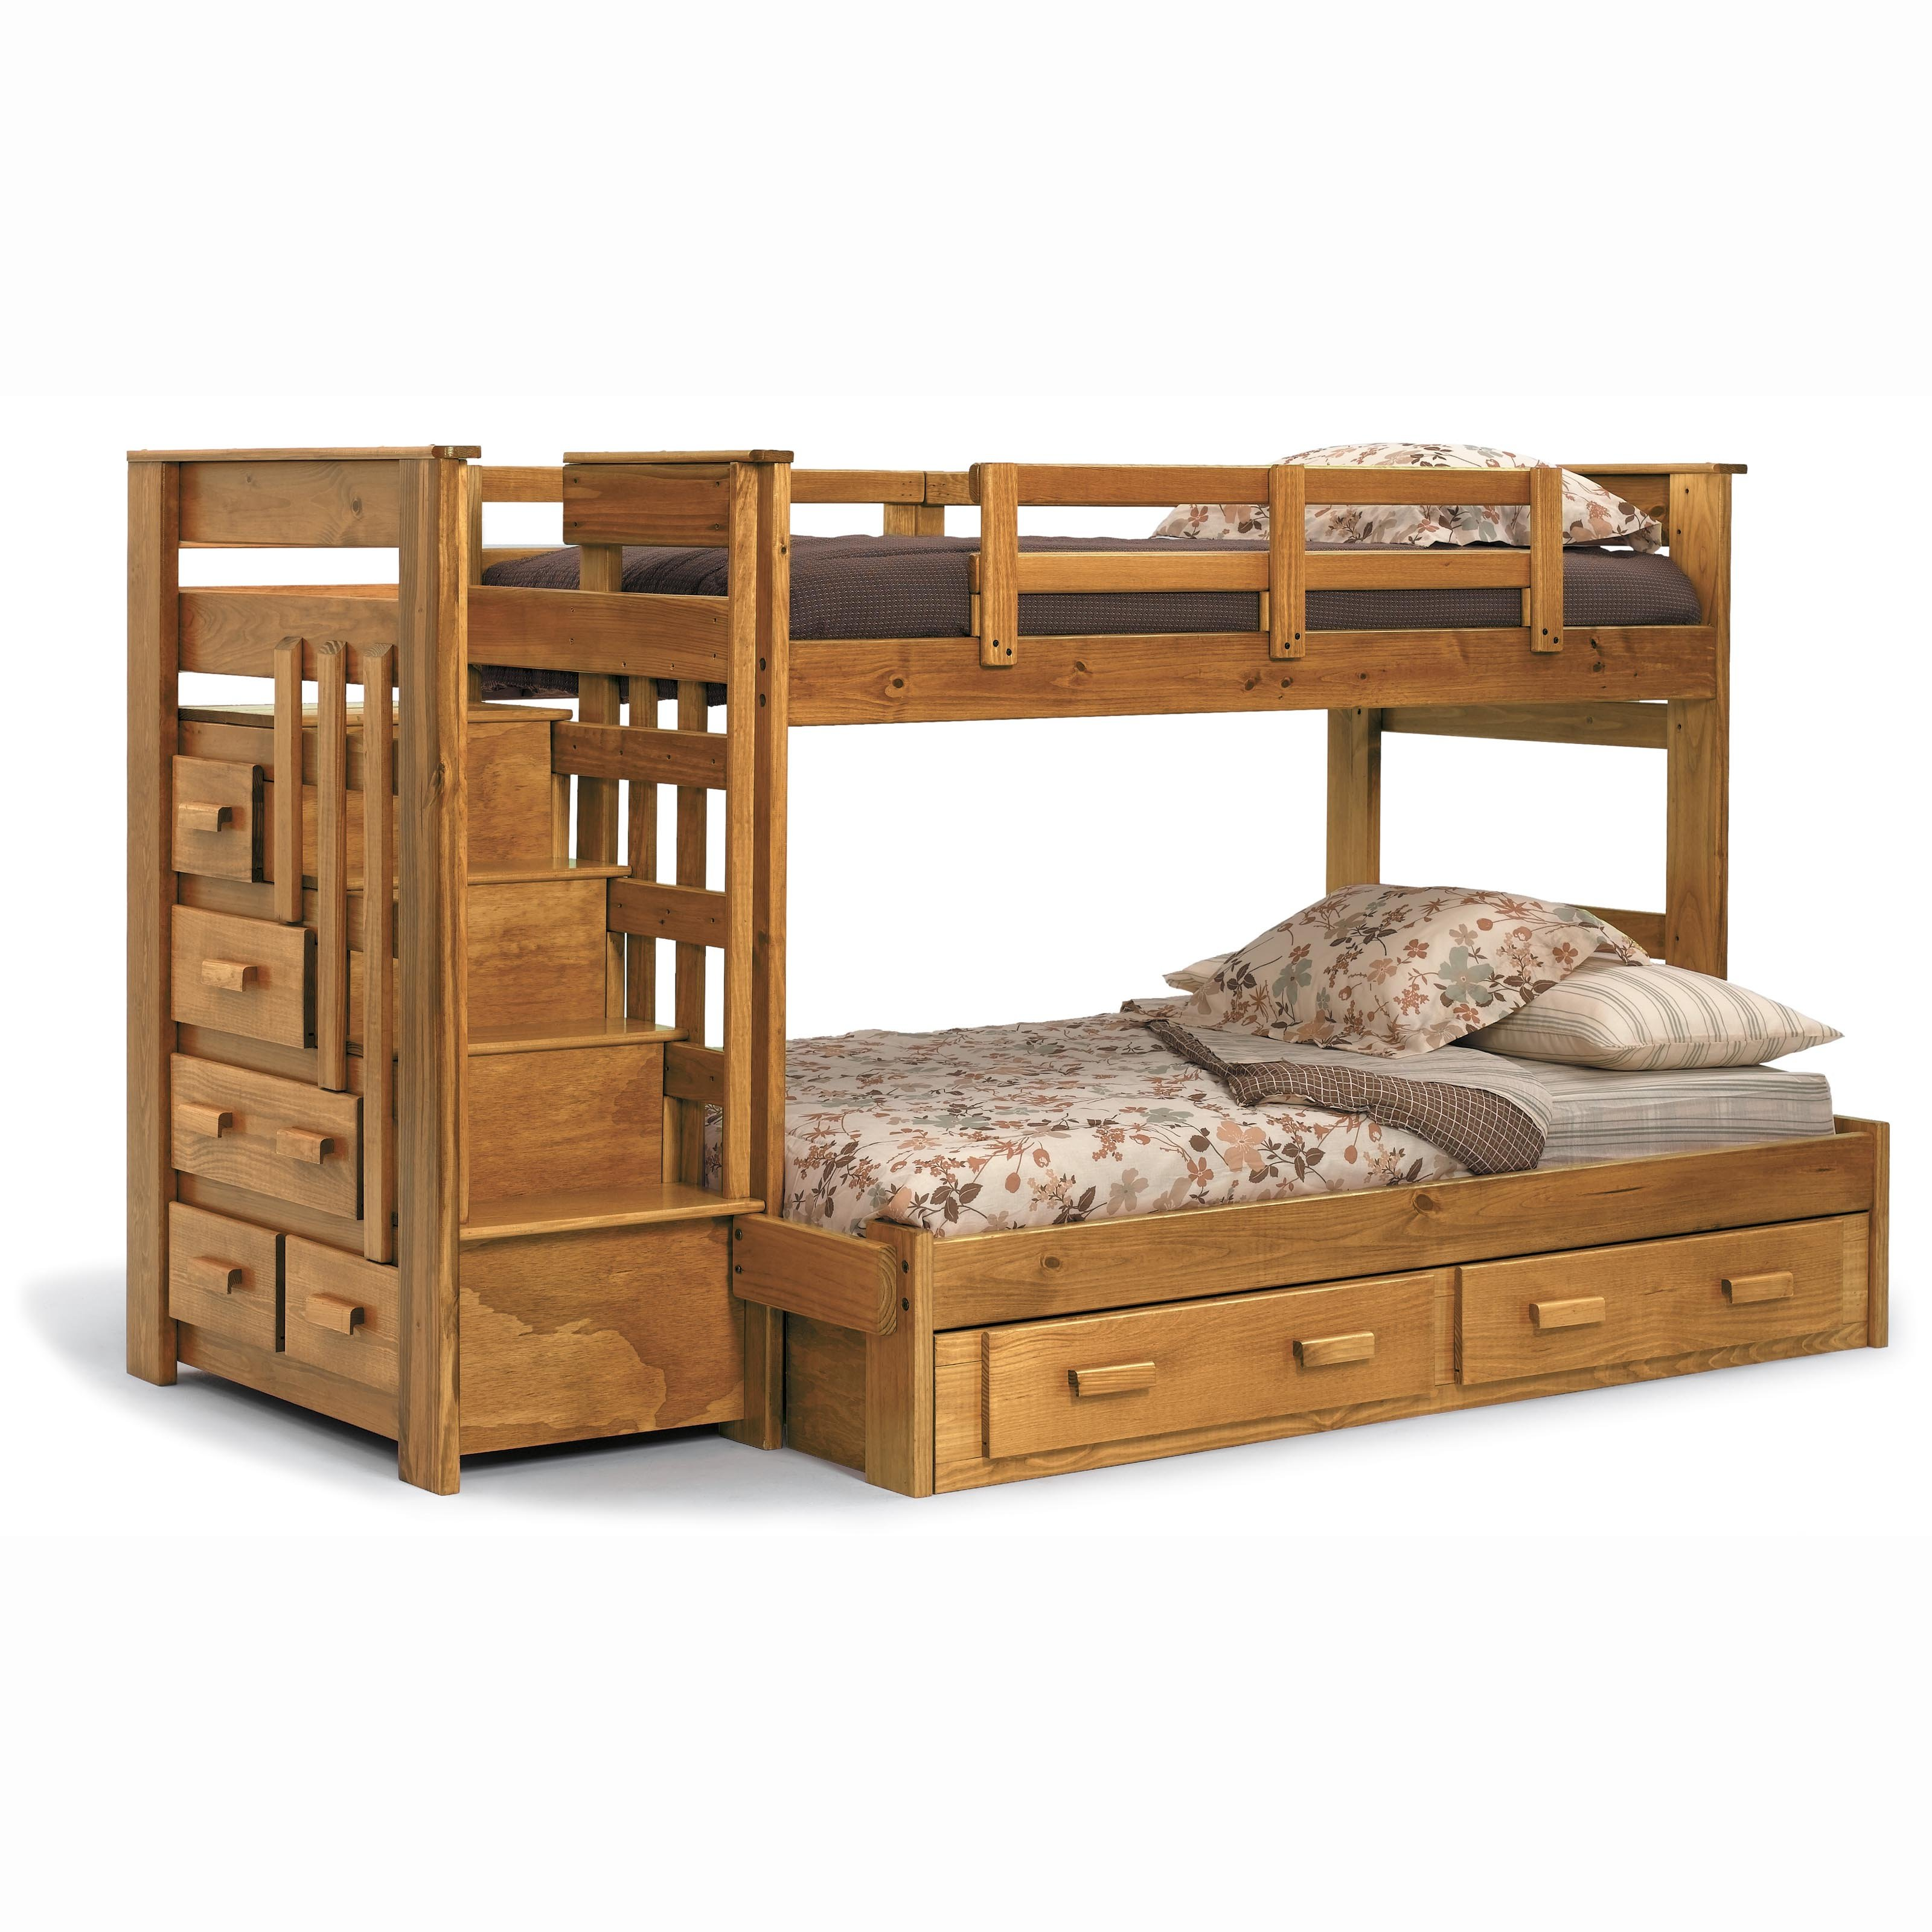 Twin Over Queen Bunk Bed Plans Bunk bed plans twin over full